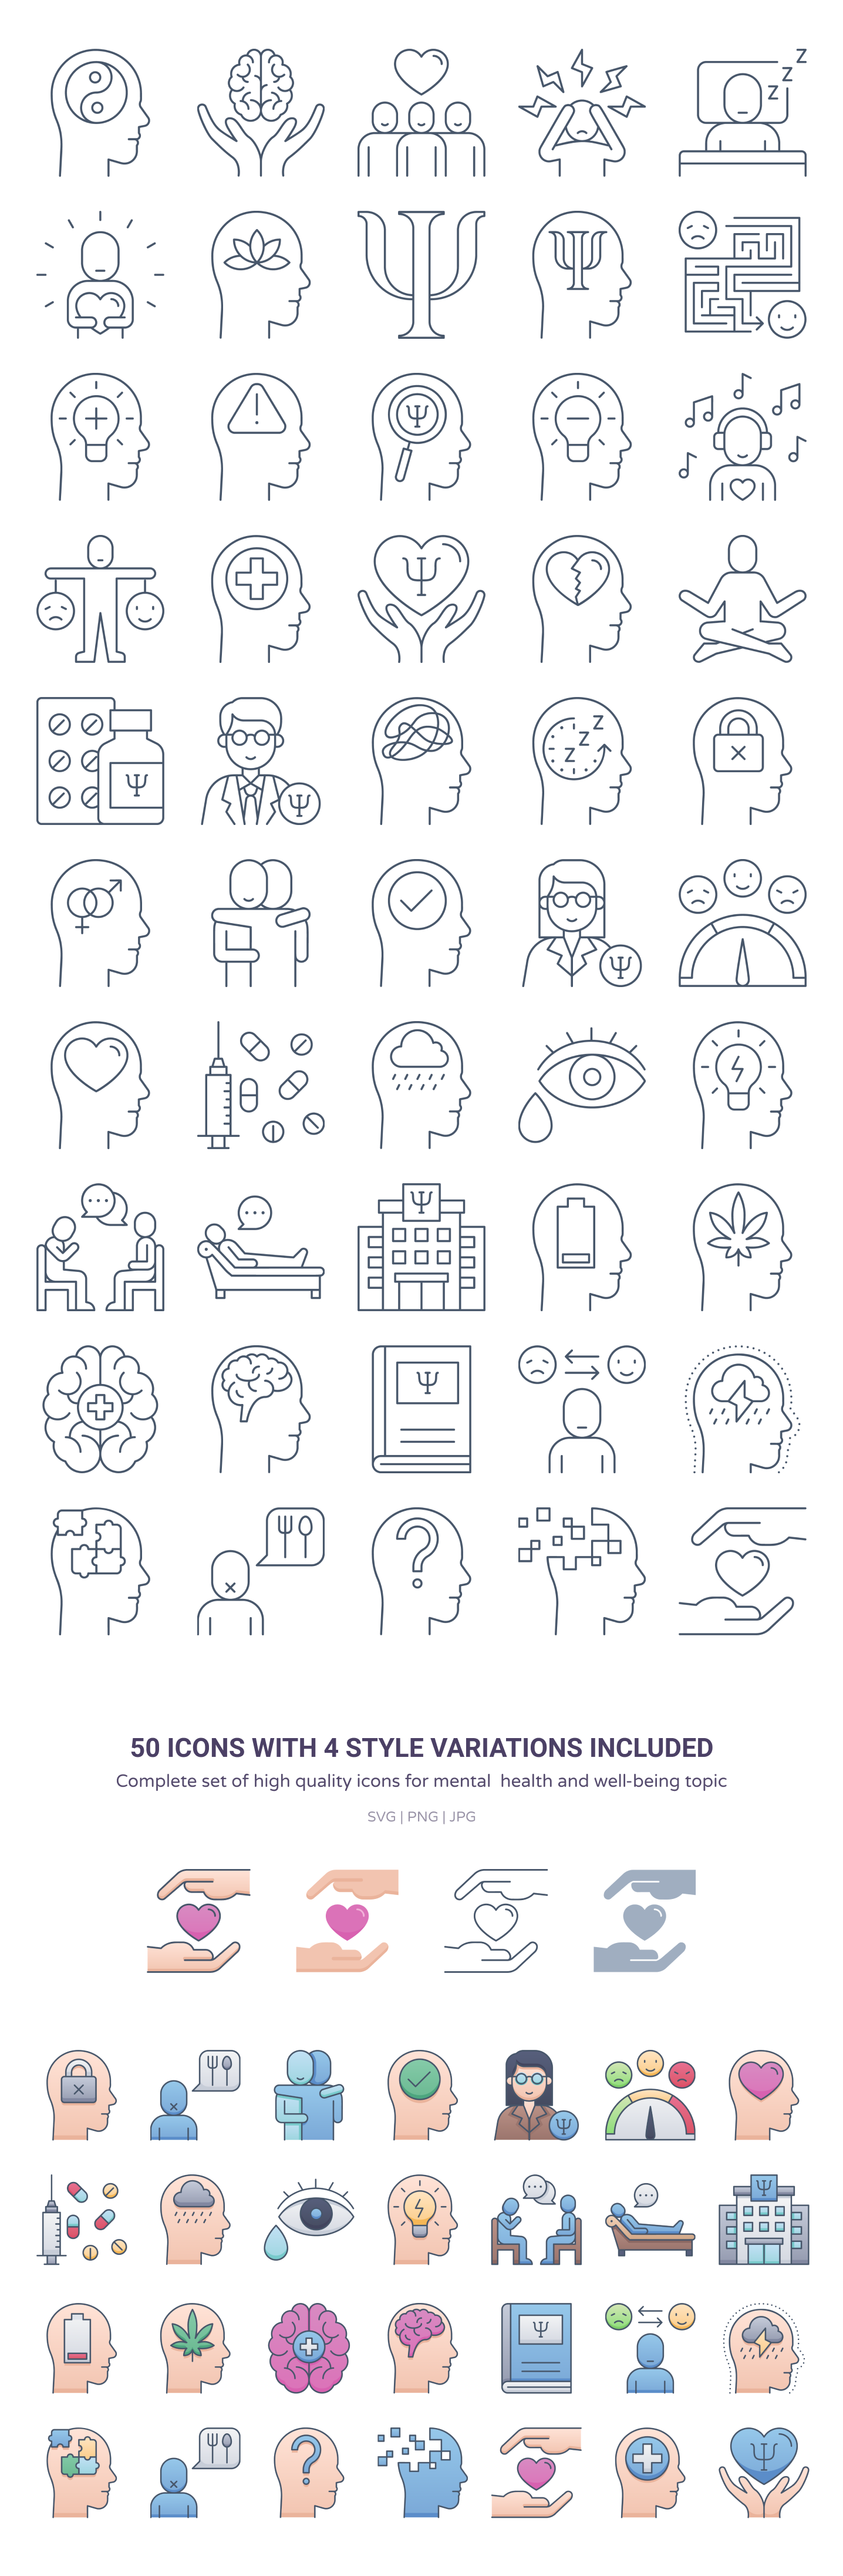 free vector icons doctor, nurse, patient, ward, mental health, therapy, consultant, self-care, love, support, community, psychology, psychologist, medicine, disorders, bipolar, depression, stress 